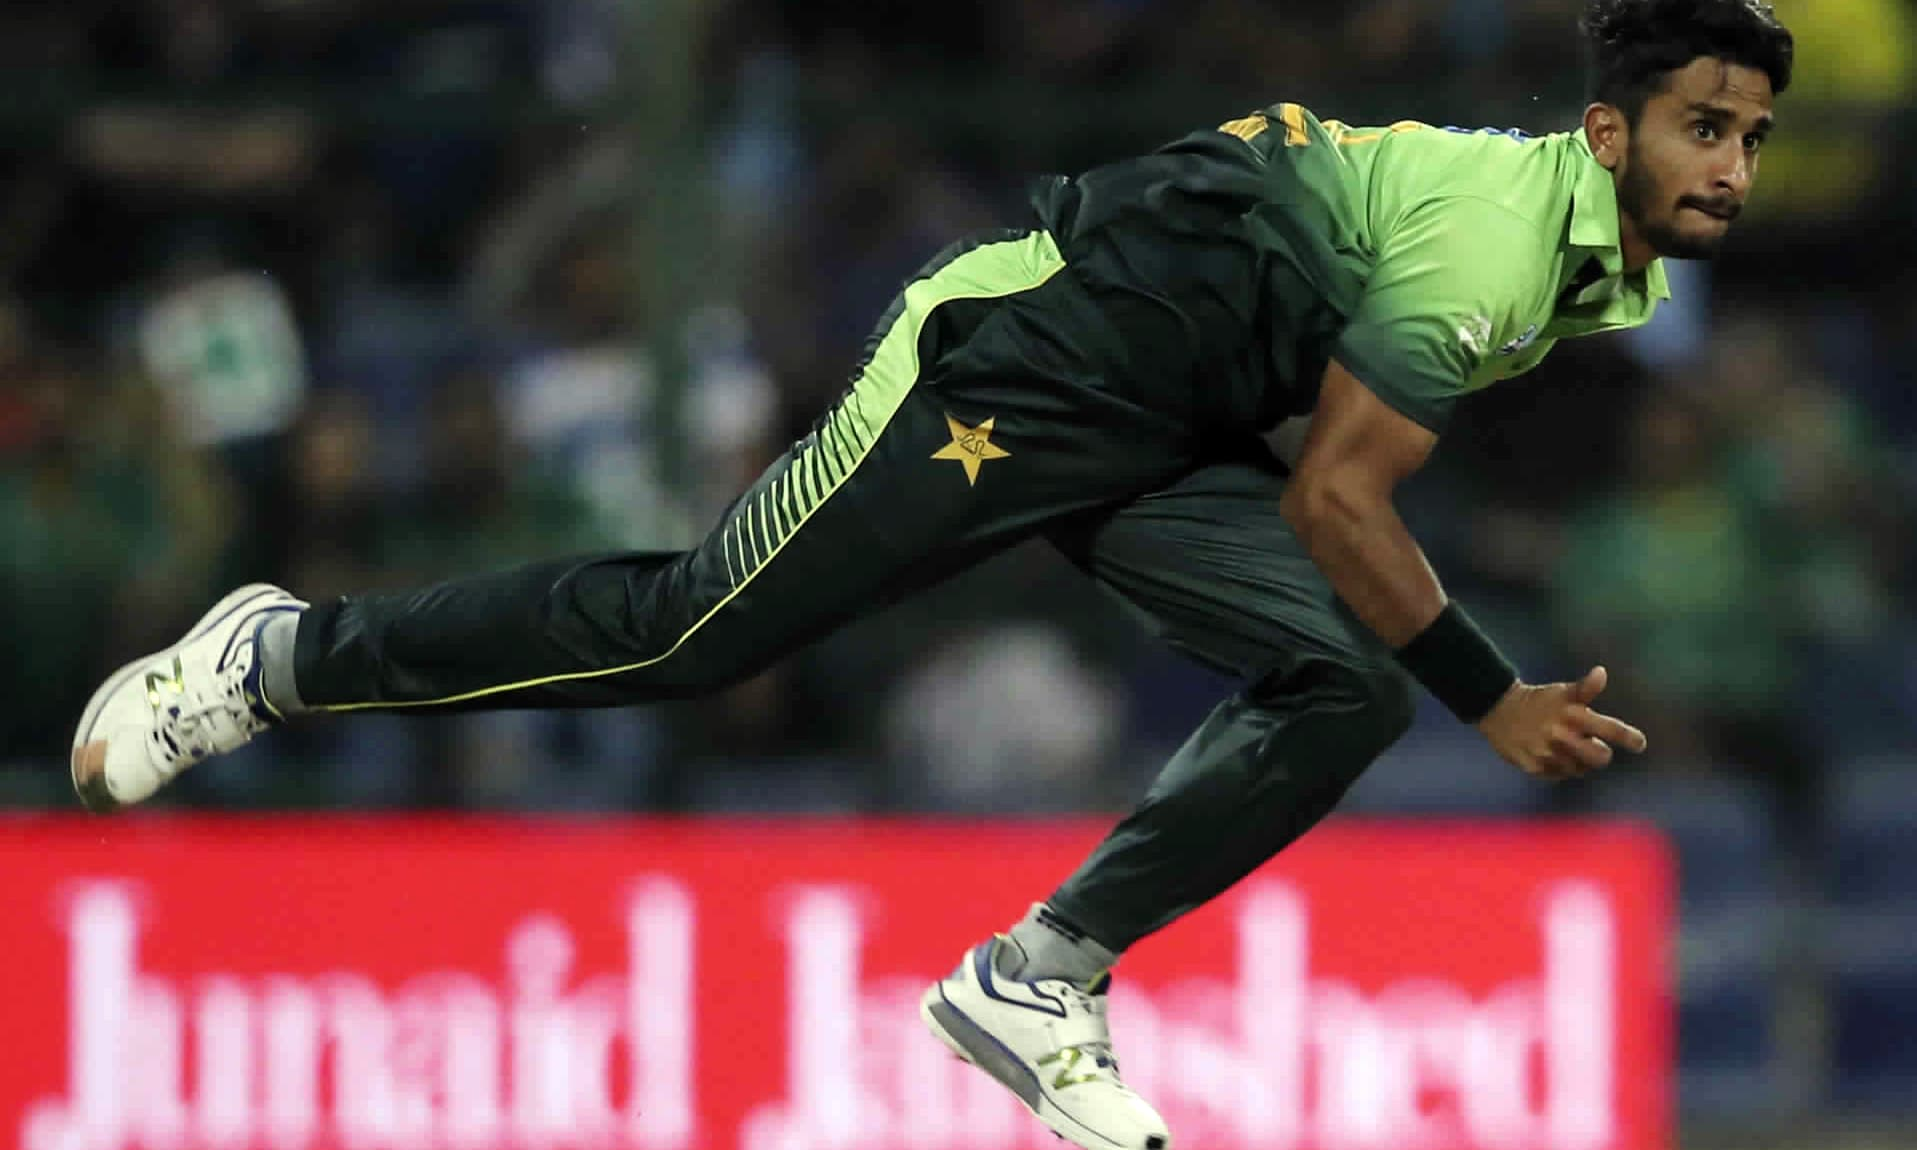 Hassan Ali bowls during the first T20 match. —AP